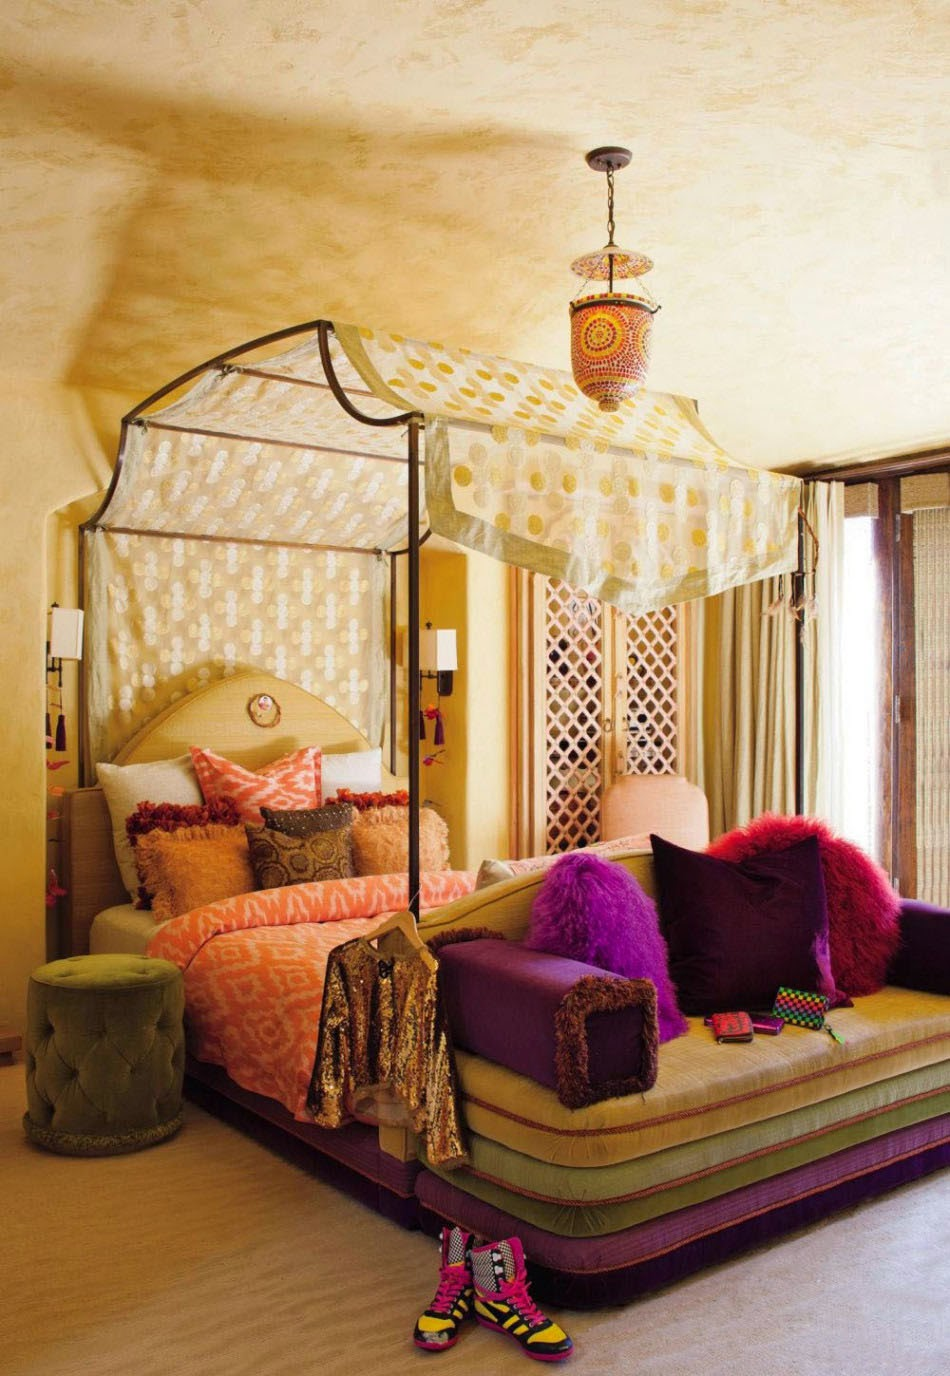 creative canopy beds for bedroom dreamers | interior design